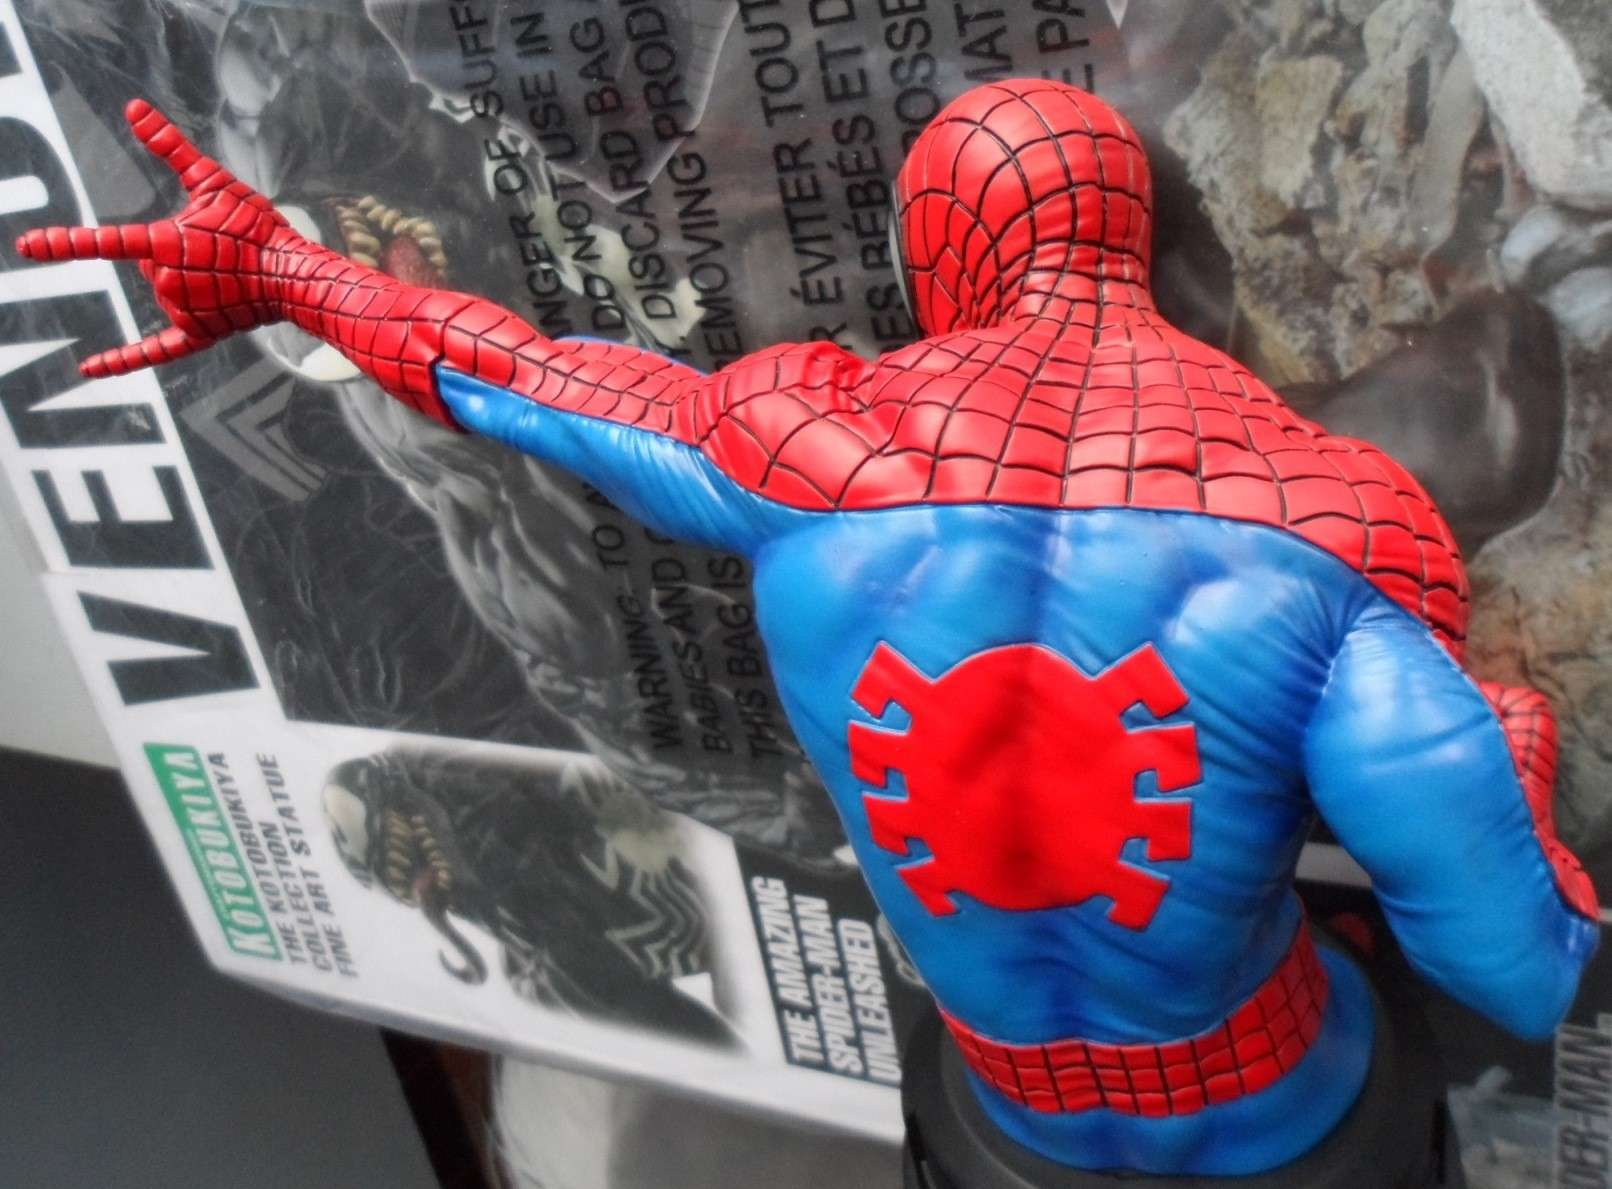 SPIDERMAN RED AND BLUE MINI BUST GENTLE GIANT Spider14